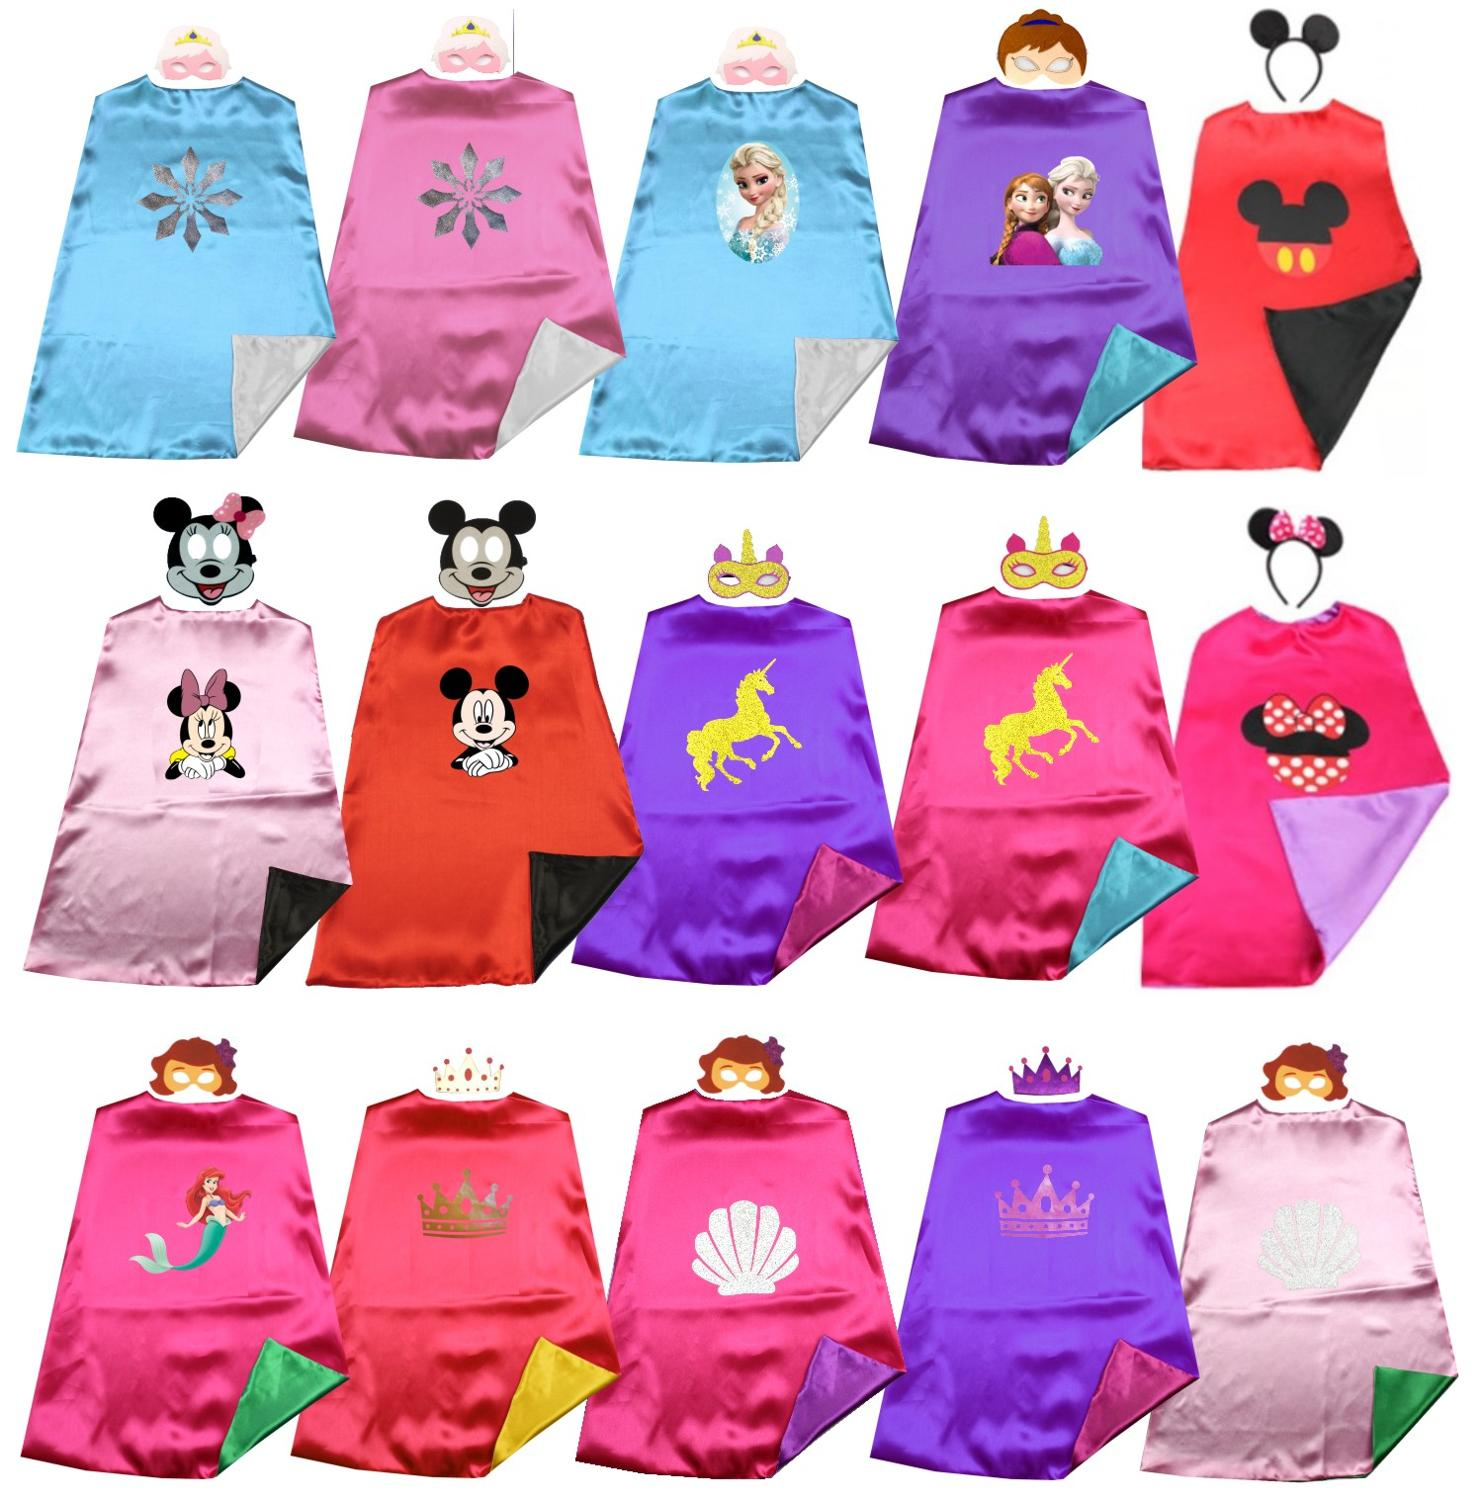 Jenter SuperHero Cape Unicorn Cape barnekapper Prince & Princesscape - Kostymer